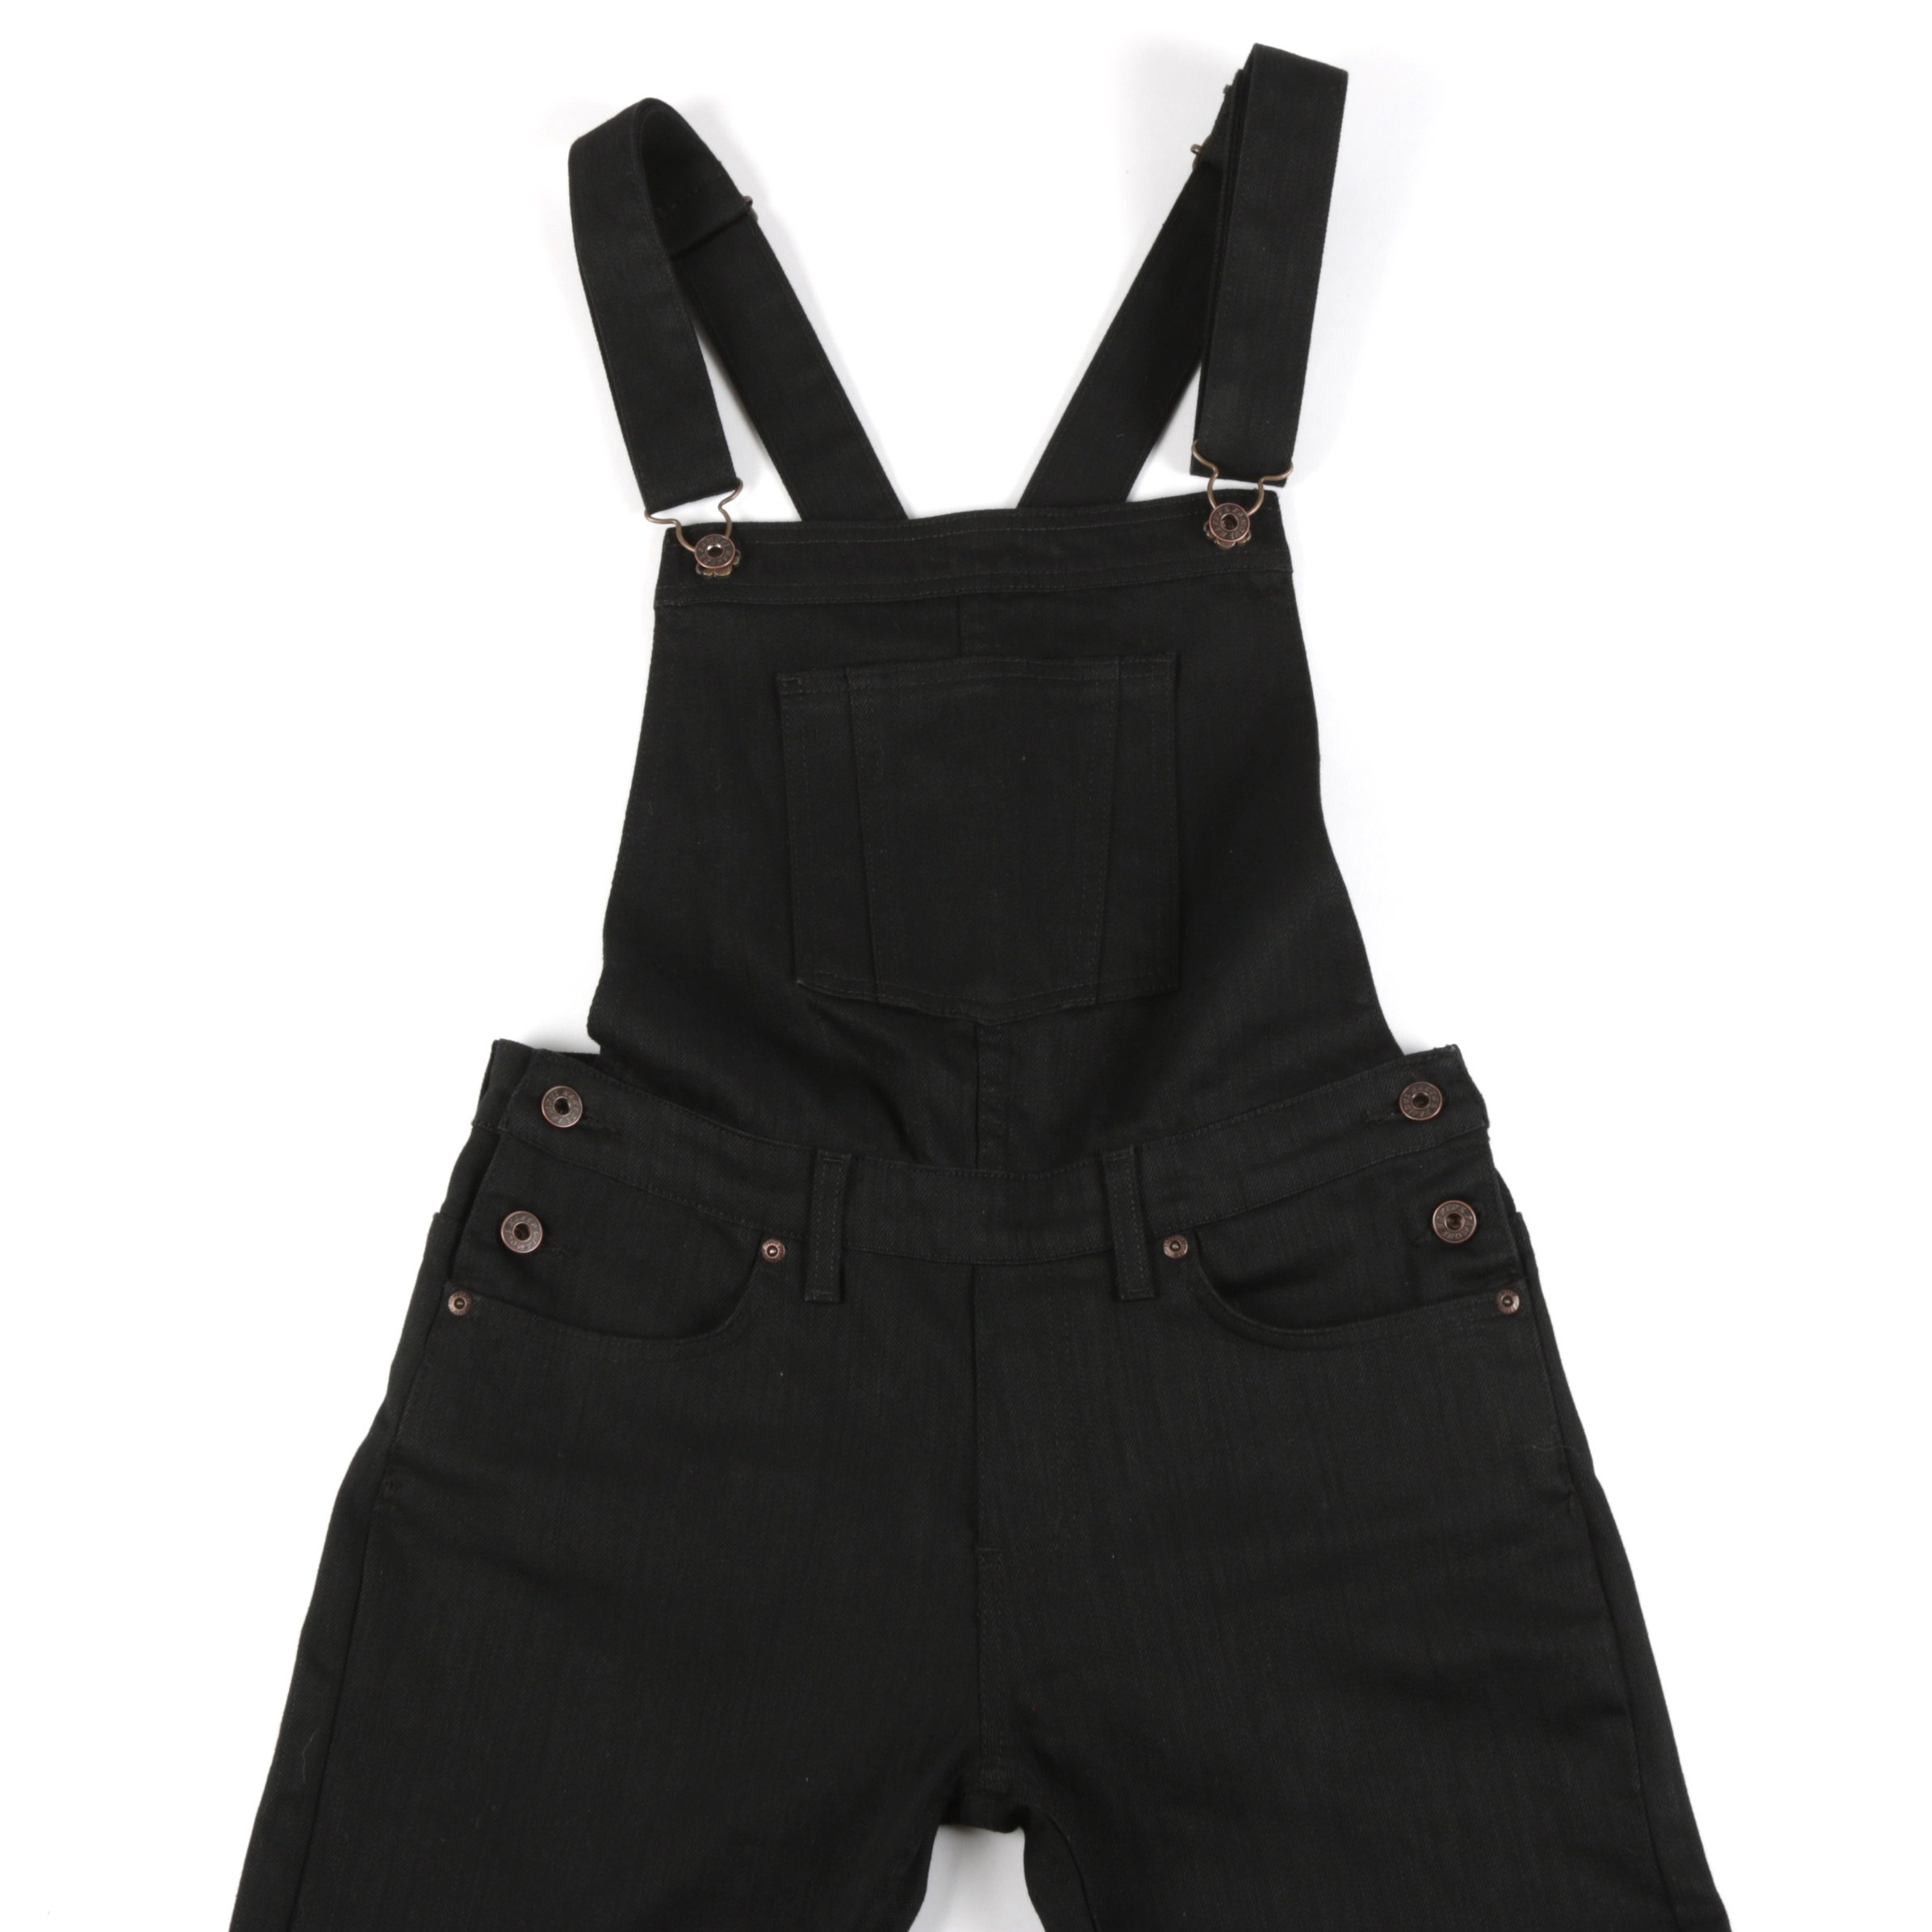 Women's Overalls Black Power-Stretch Front View